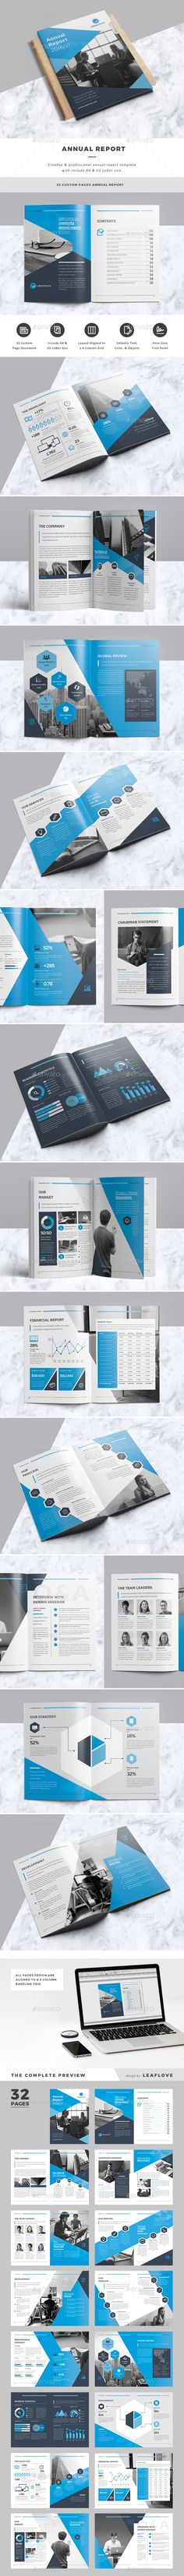 Annual Report Template InDesign INDD. Download here: https://graphicriver.net/item/annual-report/17619117?ref=ksioks